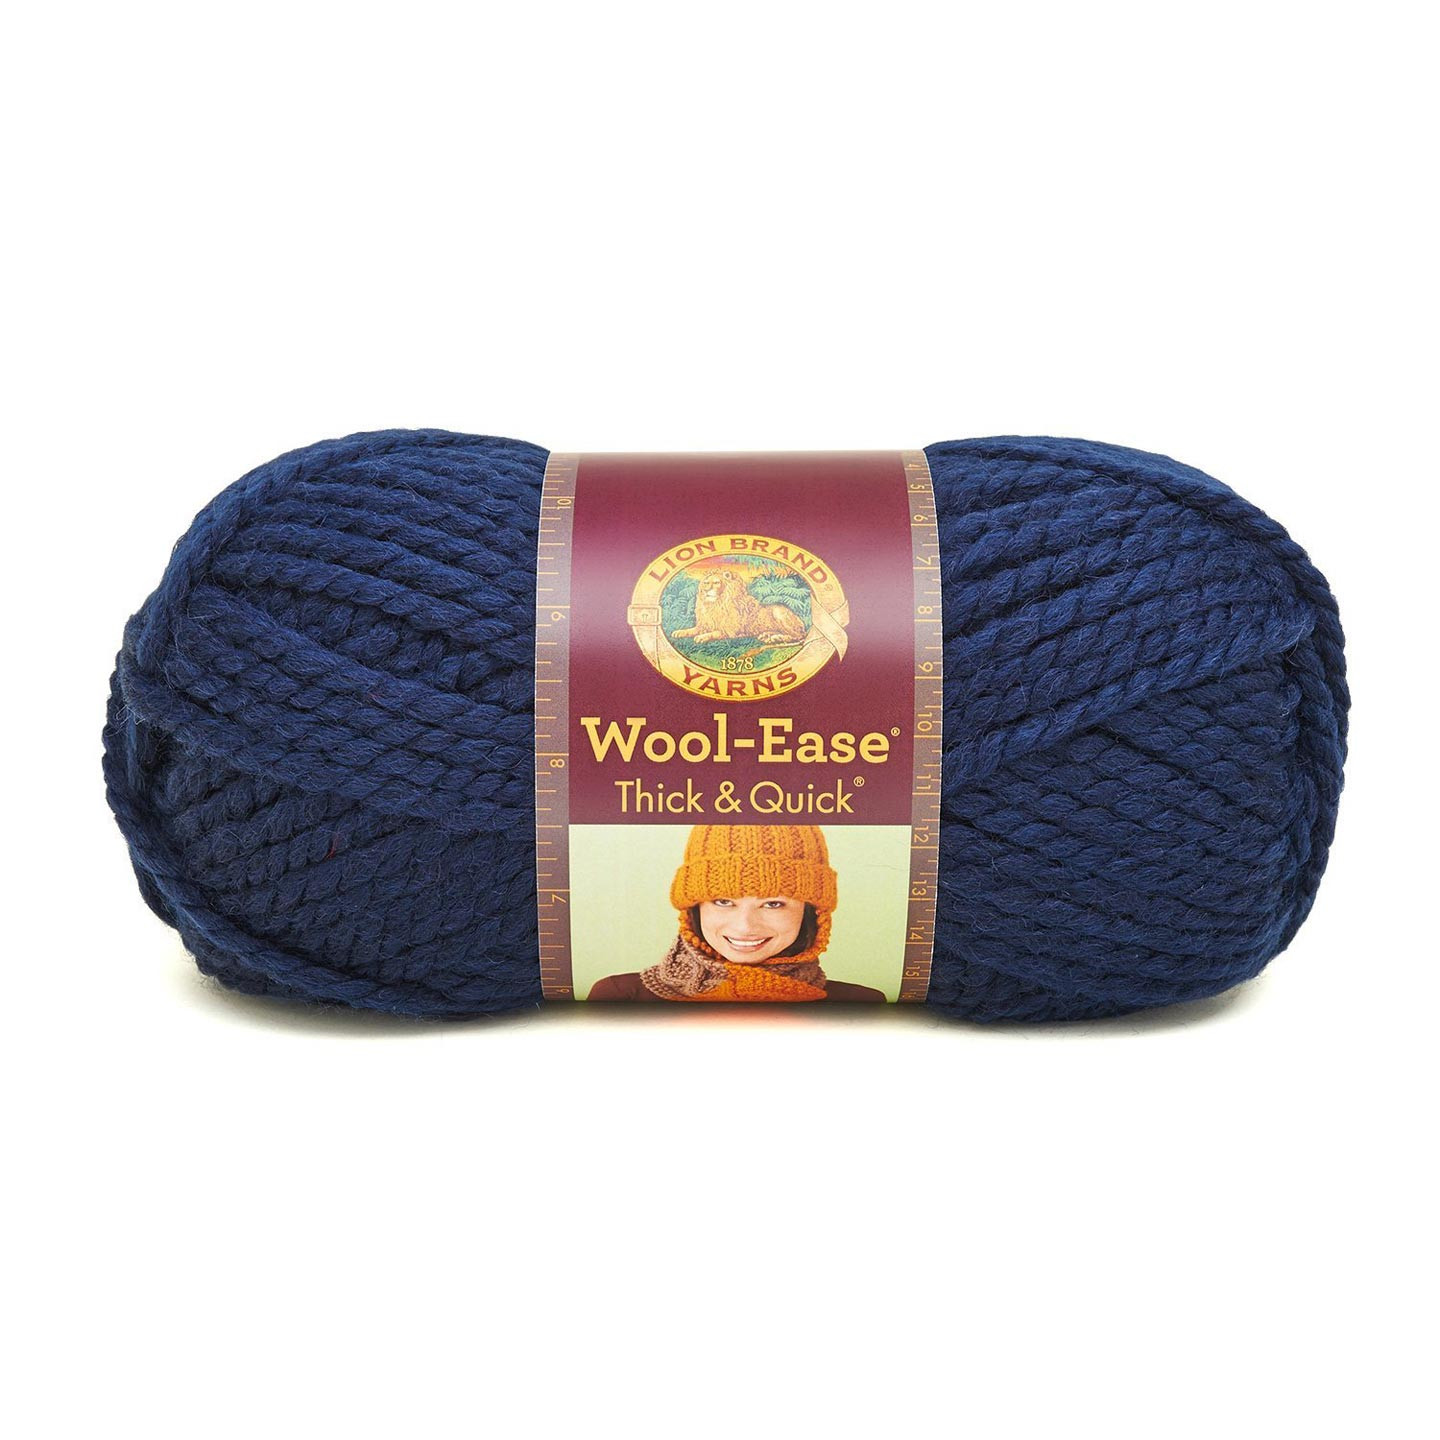 Lion Brand Wool Ease Thick and Quick Inspirational Lion Brand Wool Ease Thick & Quick Yarn Navy Of Incredible 48 Images Lion Brand Wool Ease Thick and Quick